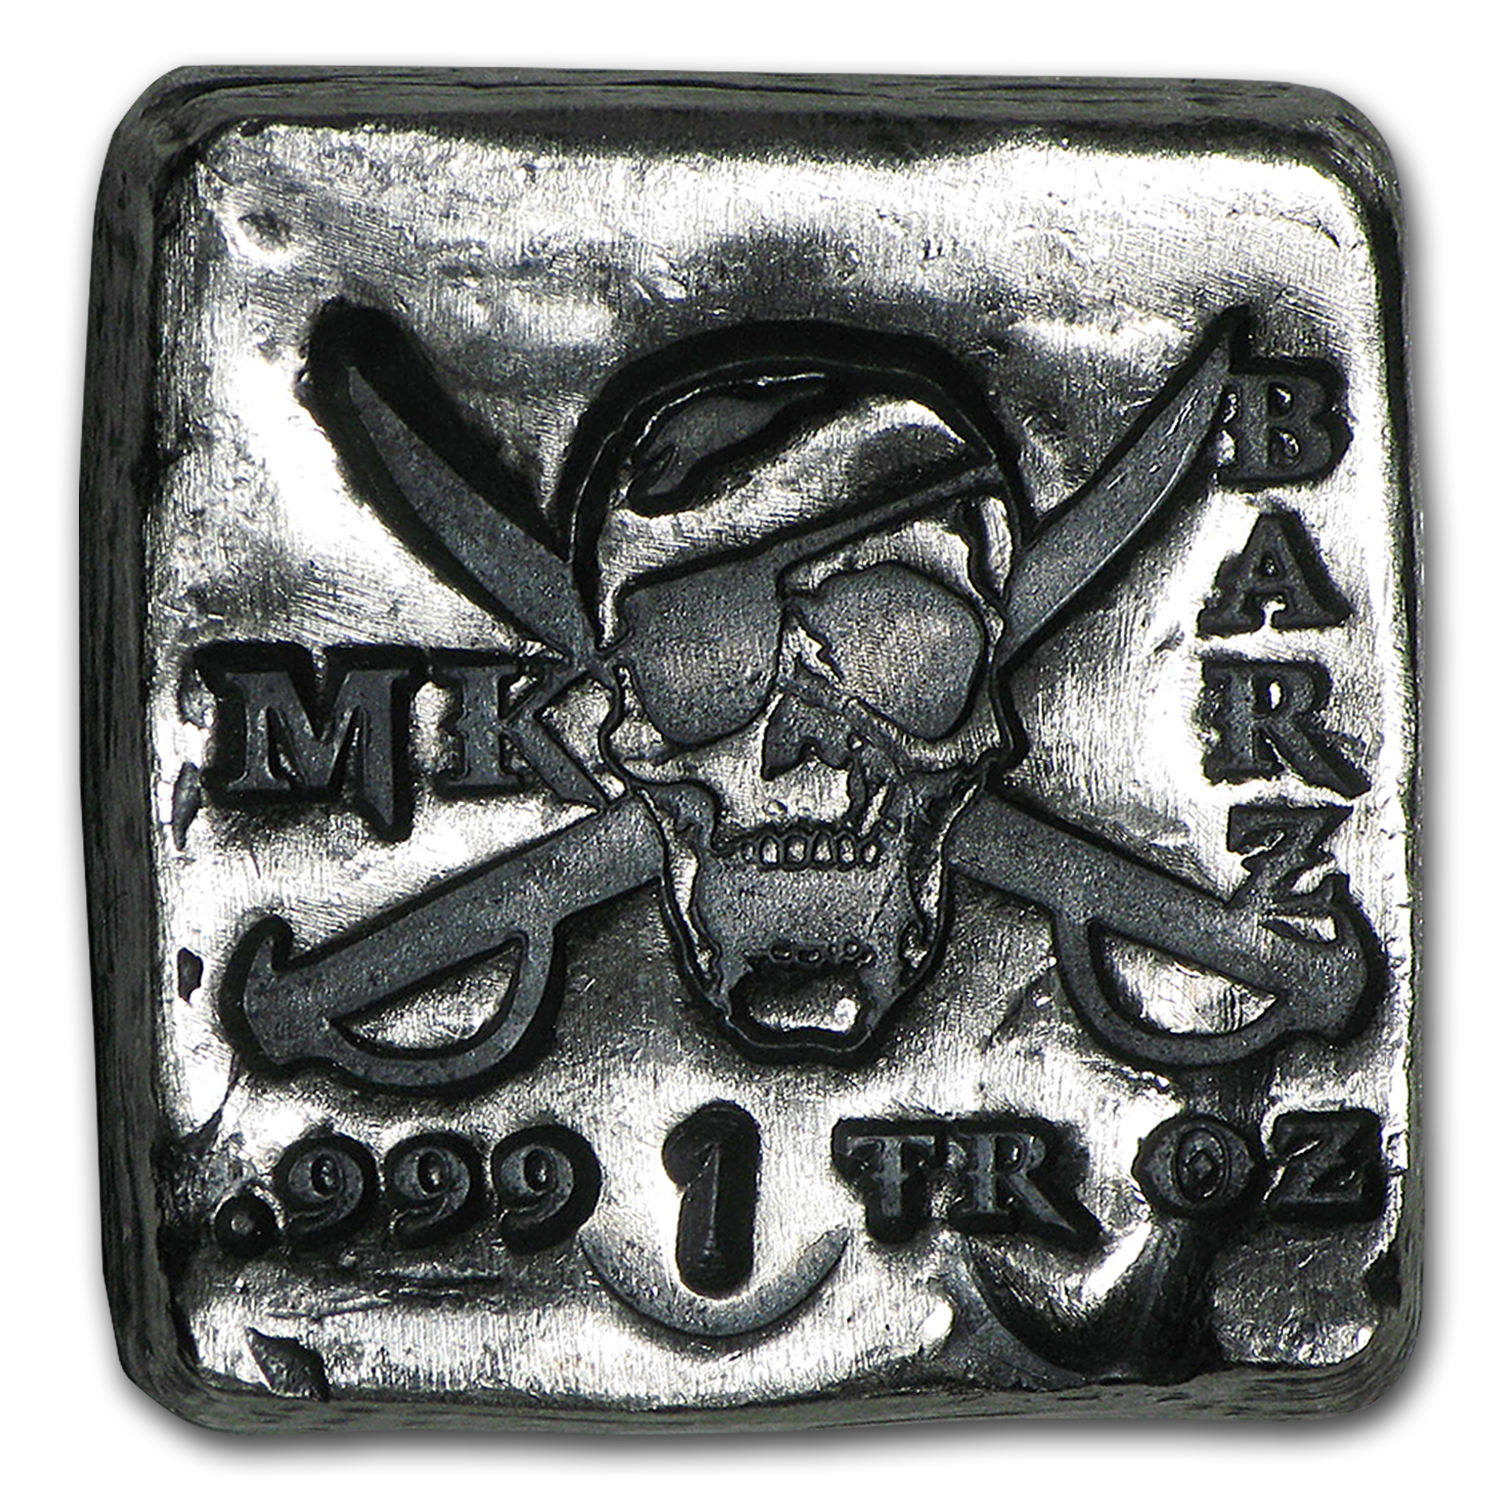 1 oz Silver Square - MK Barz & Bullion (Jolly Roger)